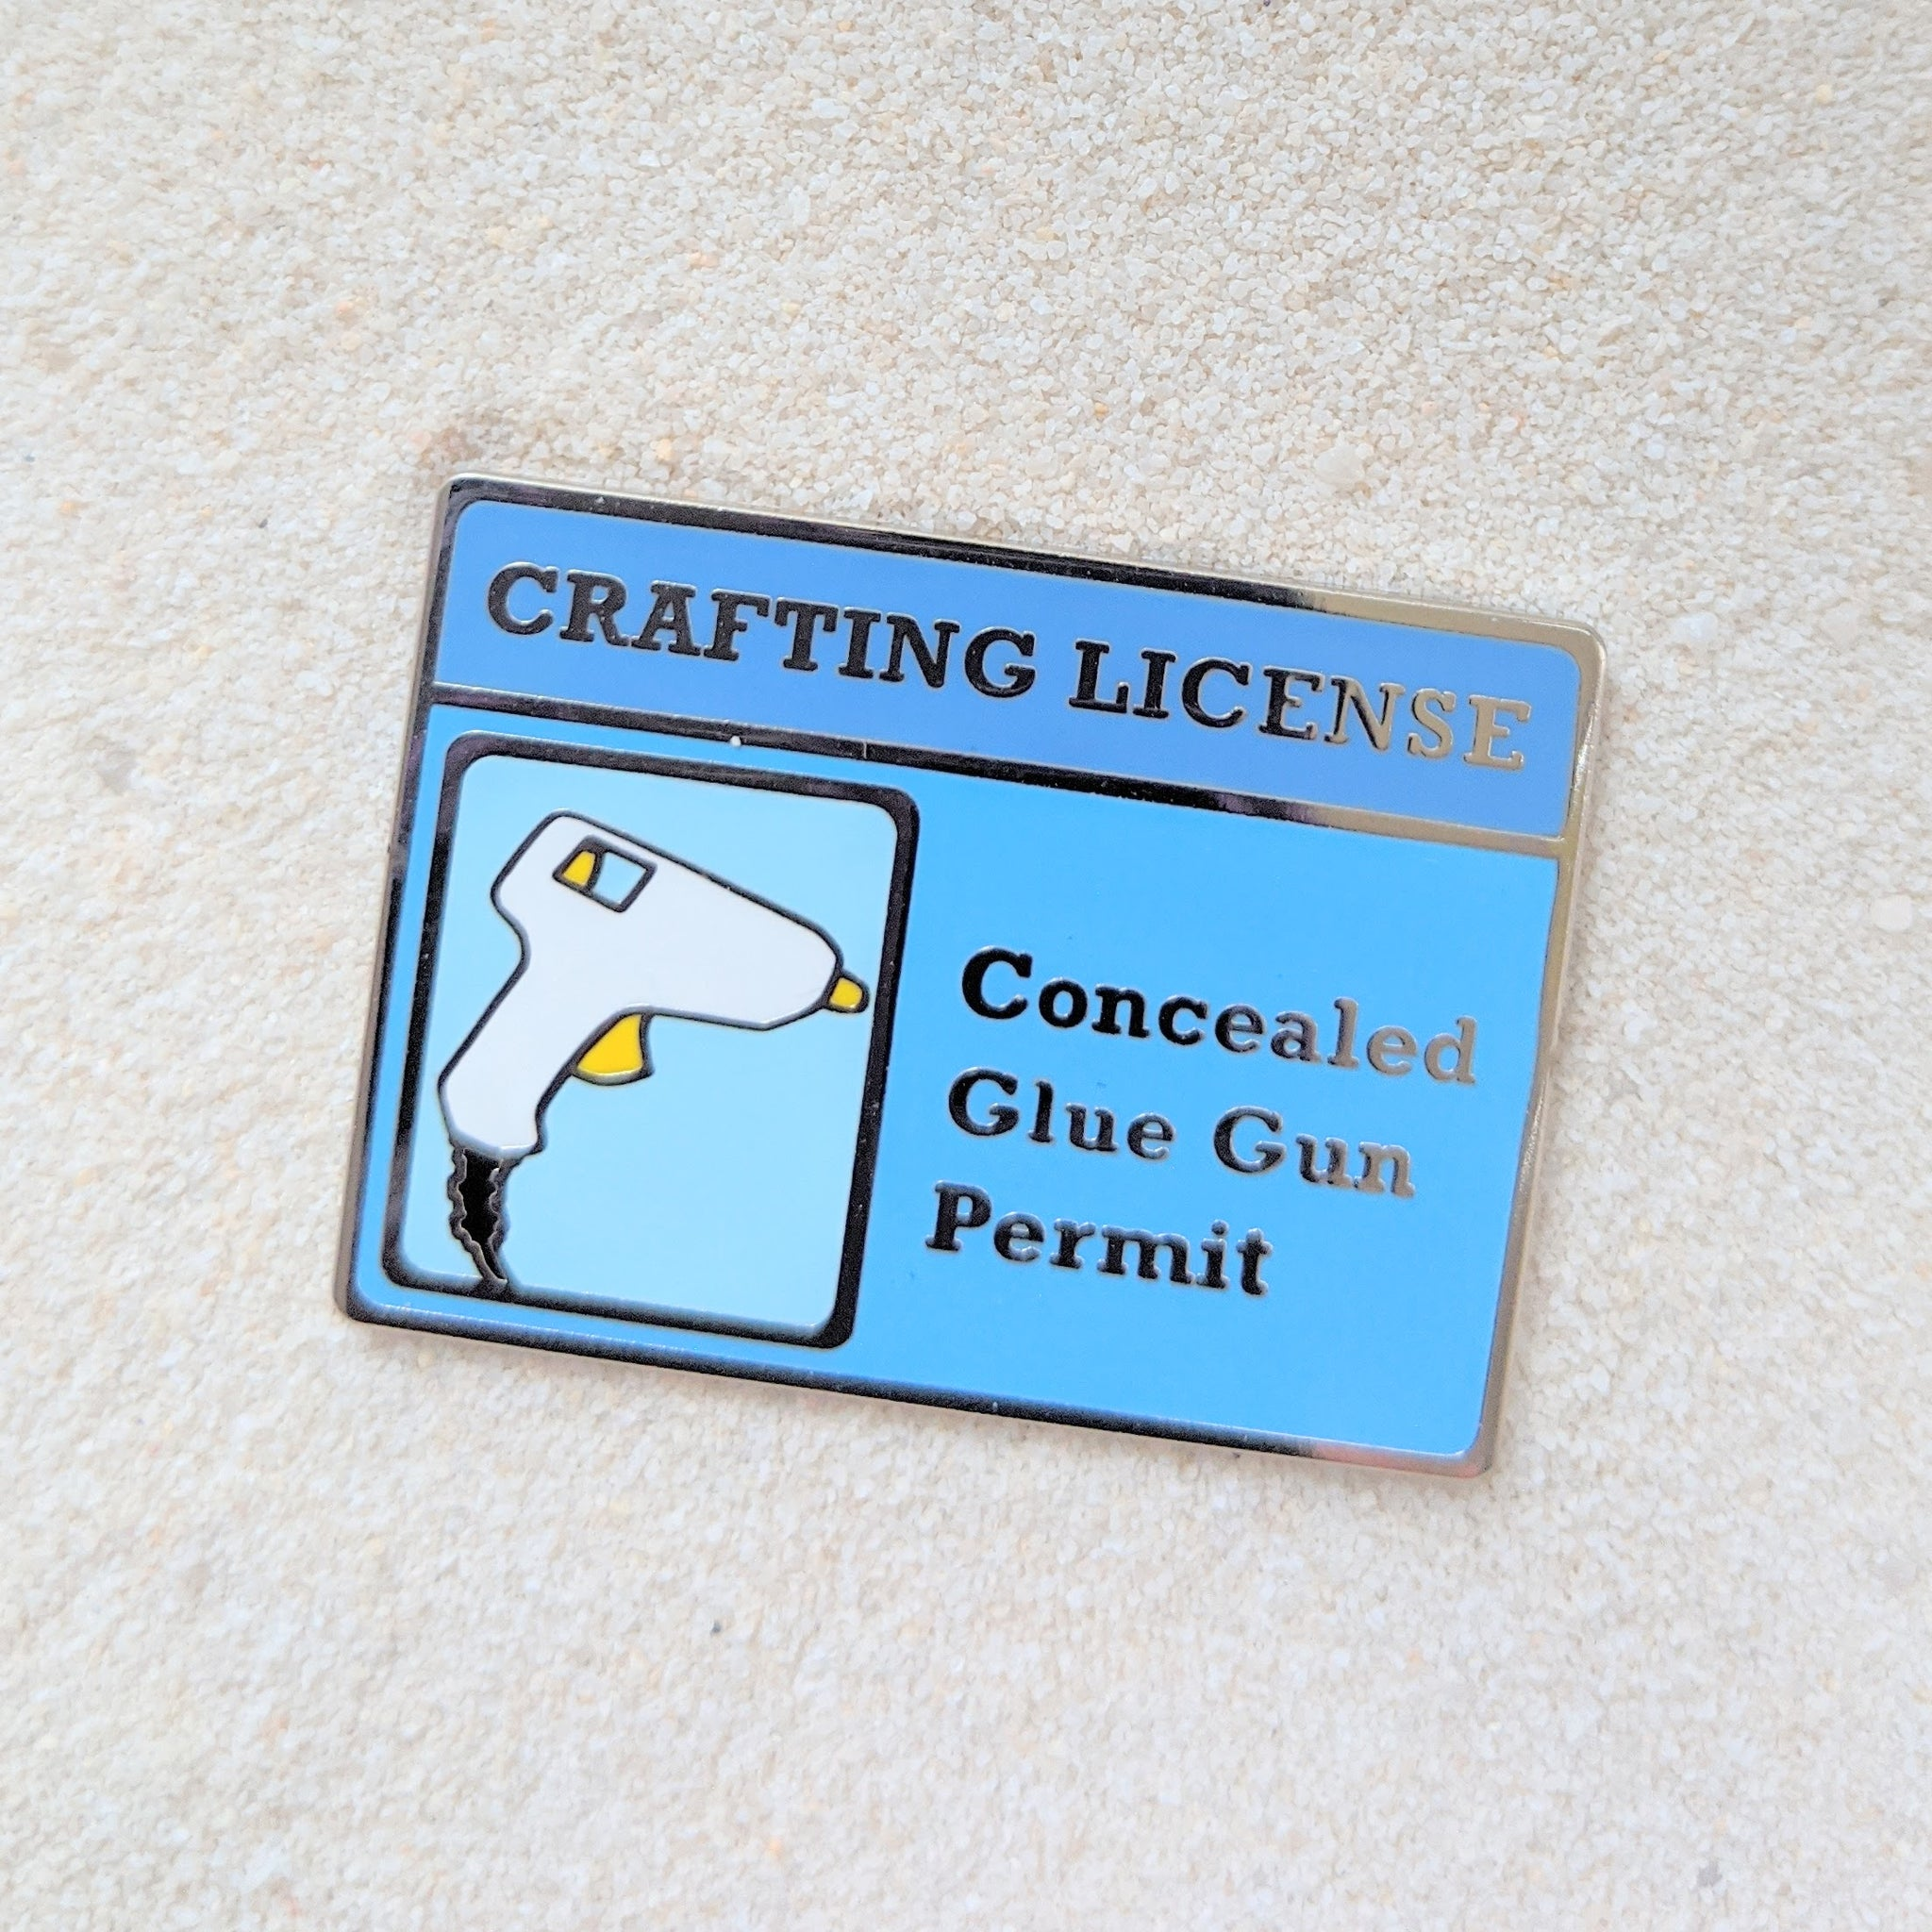 Crafting License Card Glue Gun Permit - Enamel Pin